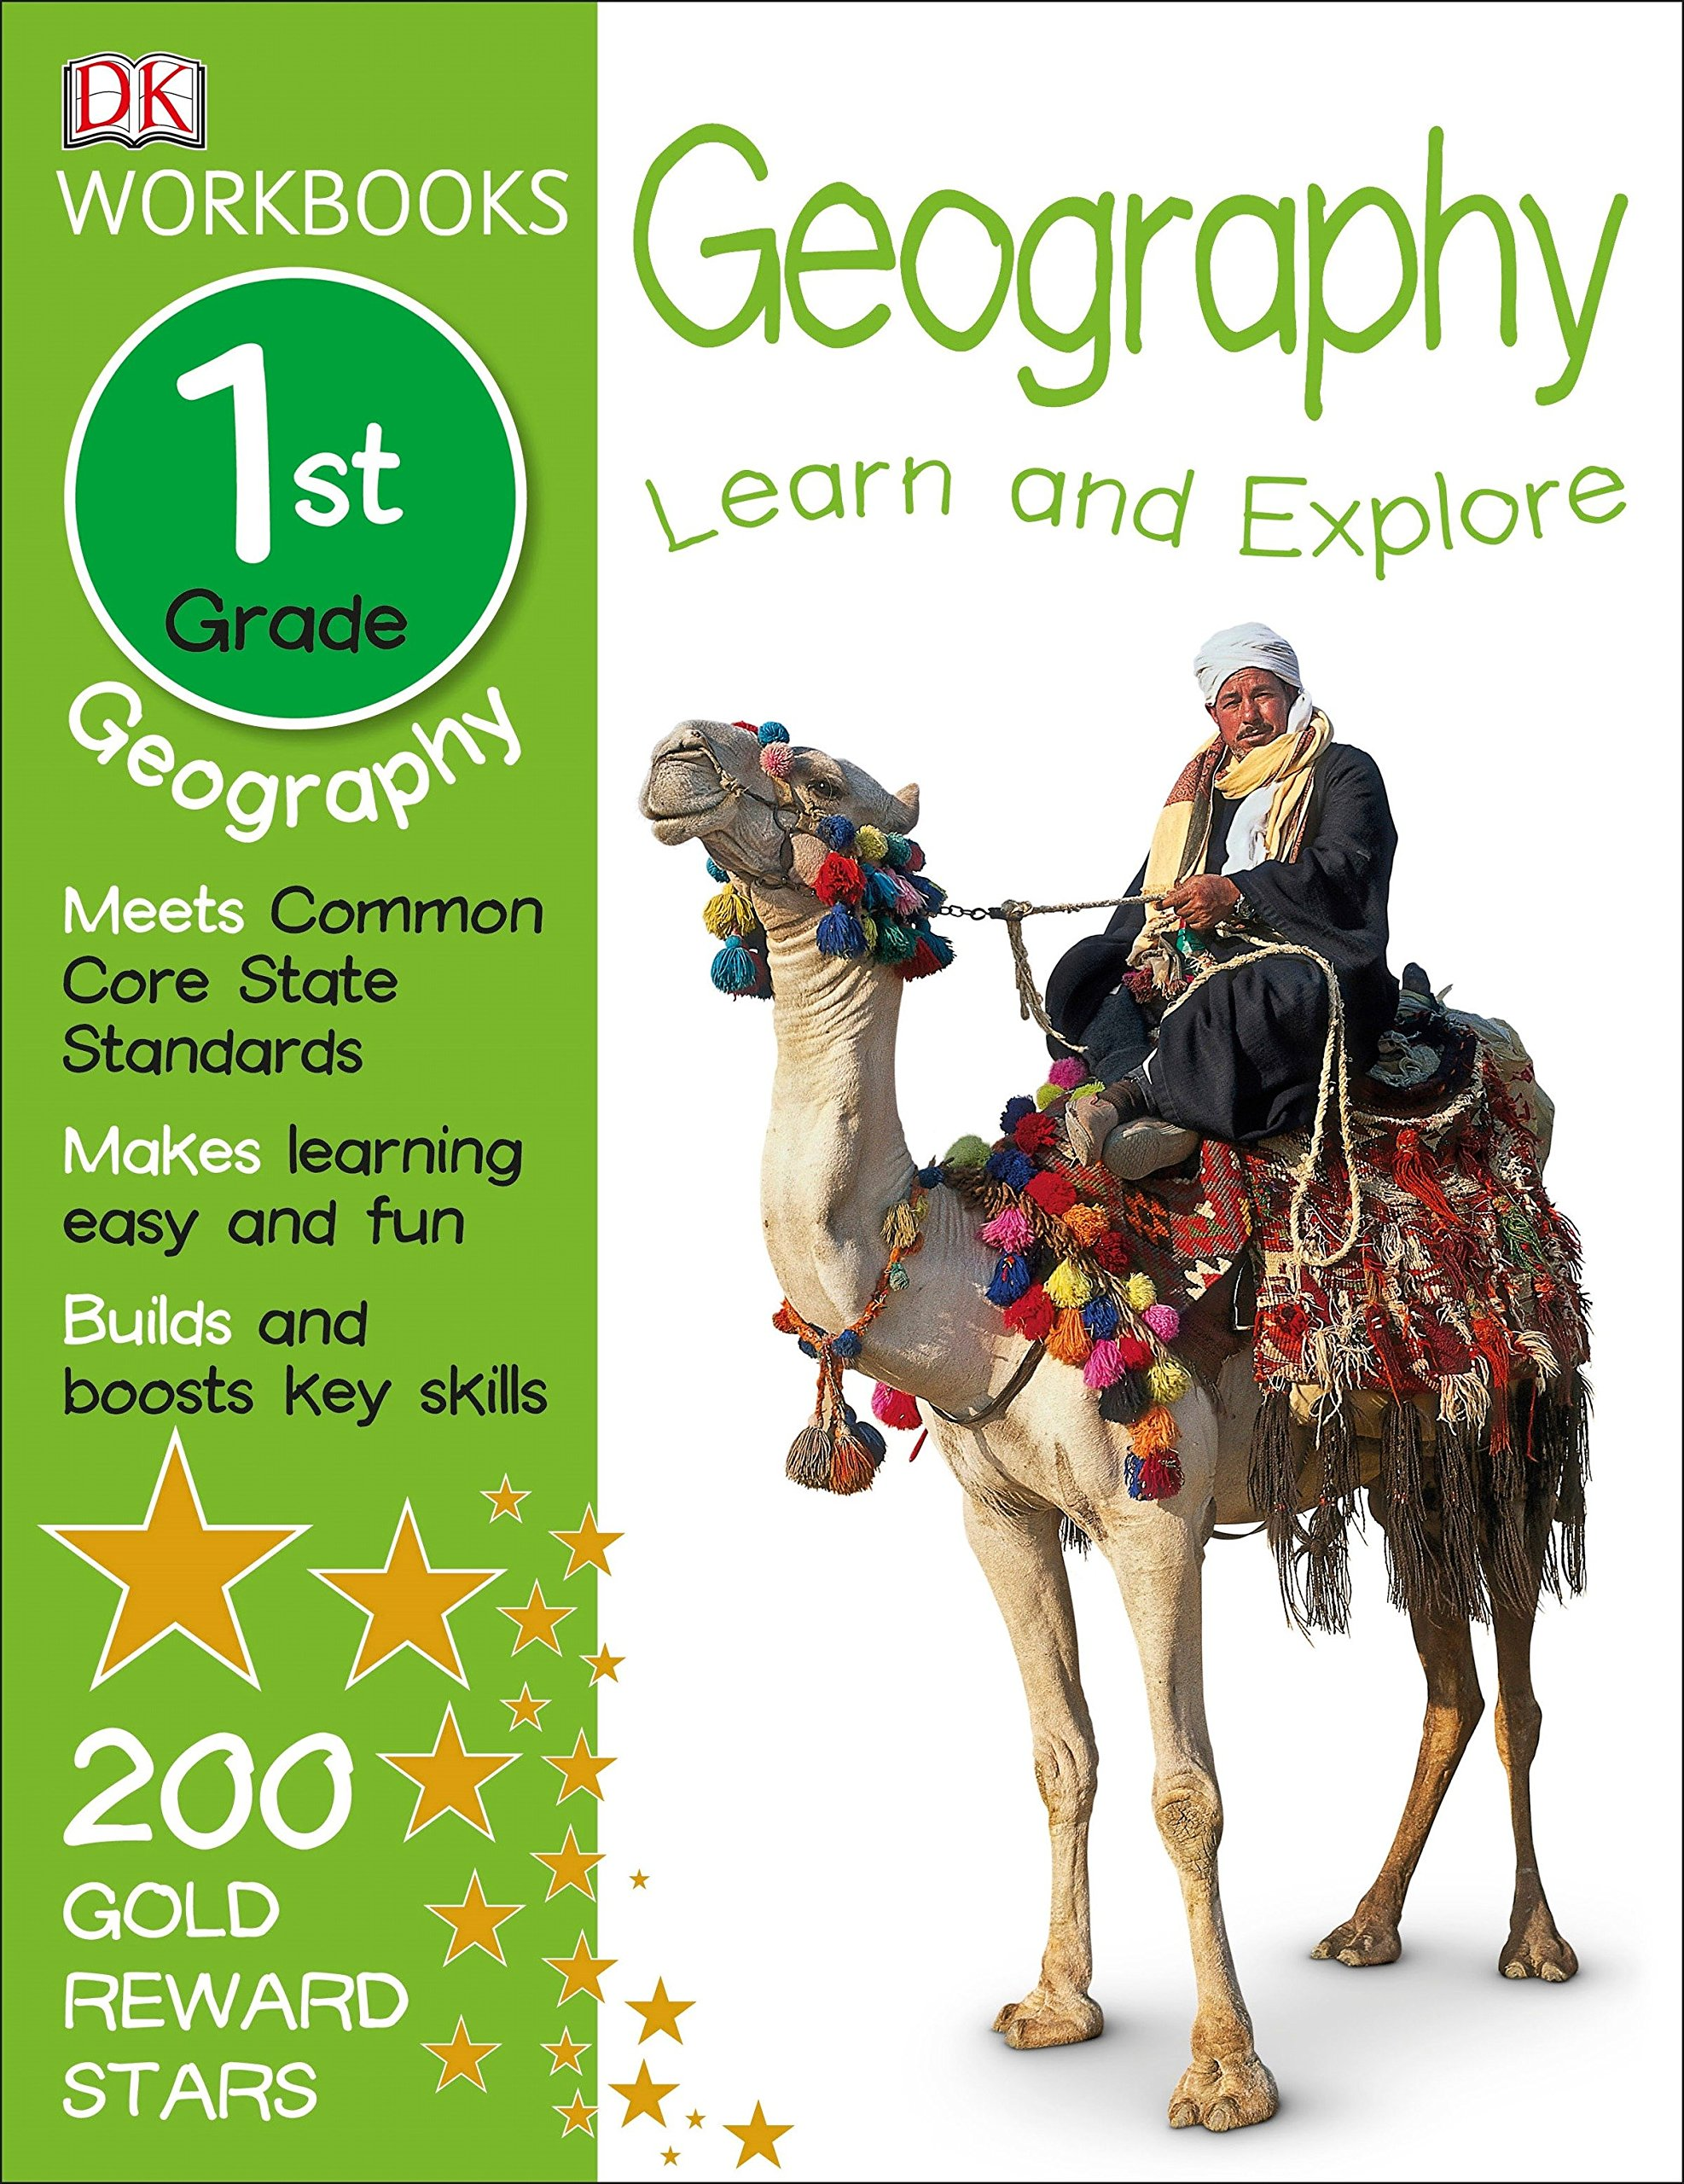 Download DK Workbooks: Geography, First Grade: Learn and Explore PDF